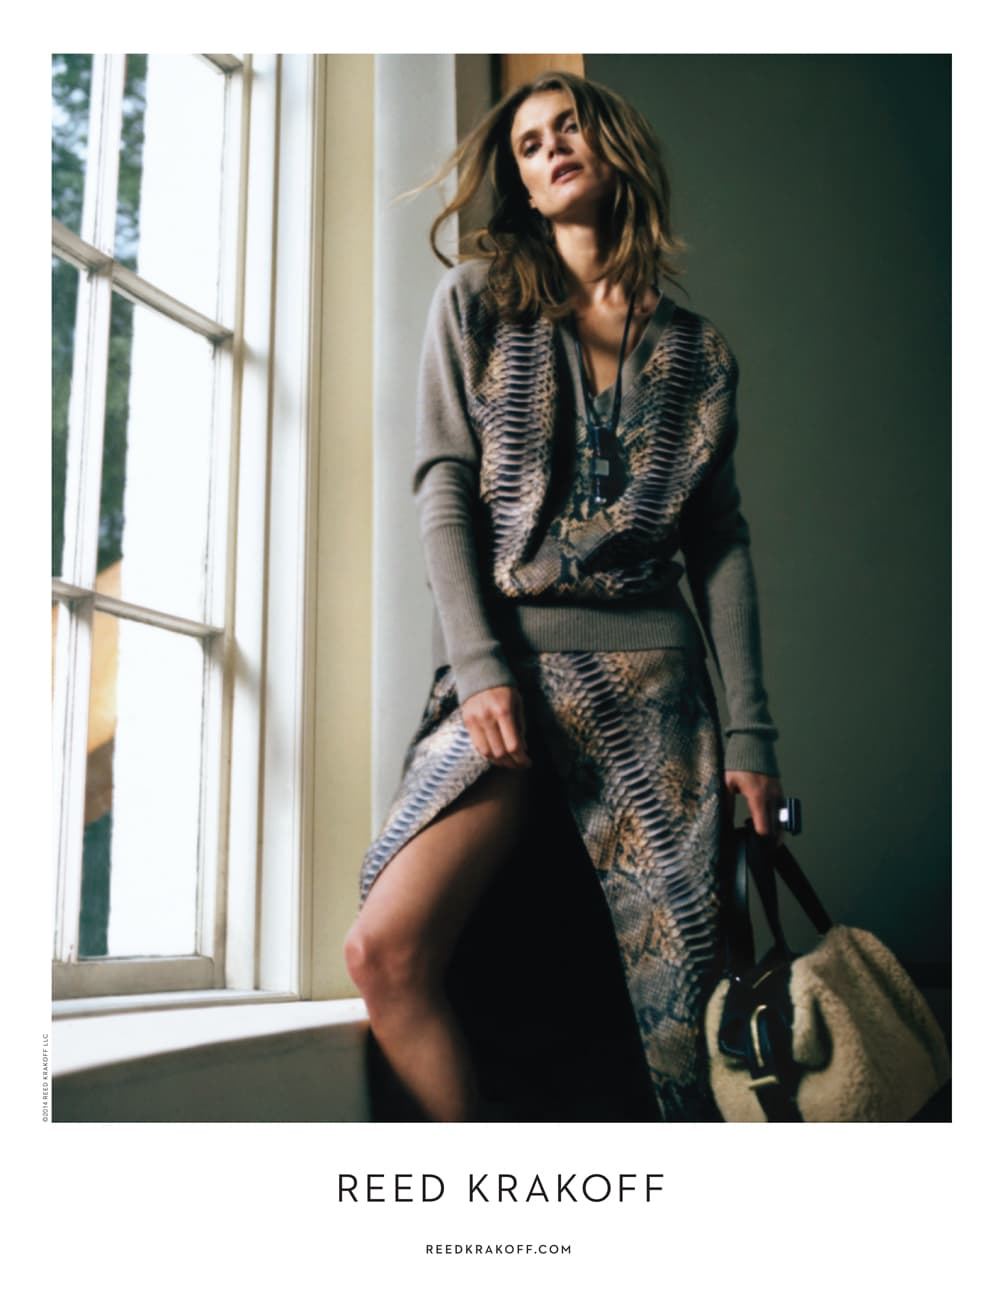 Reed Krakoff FW 14 Campaign